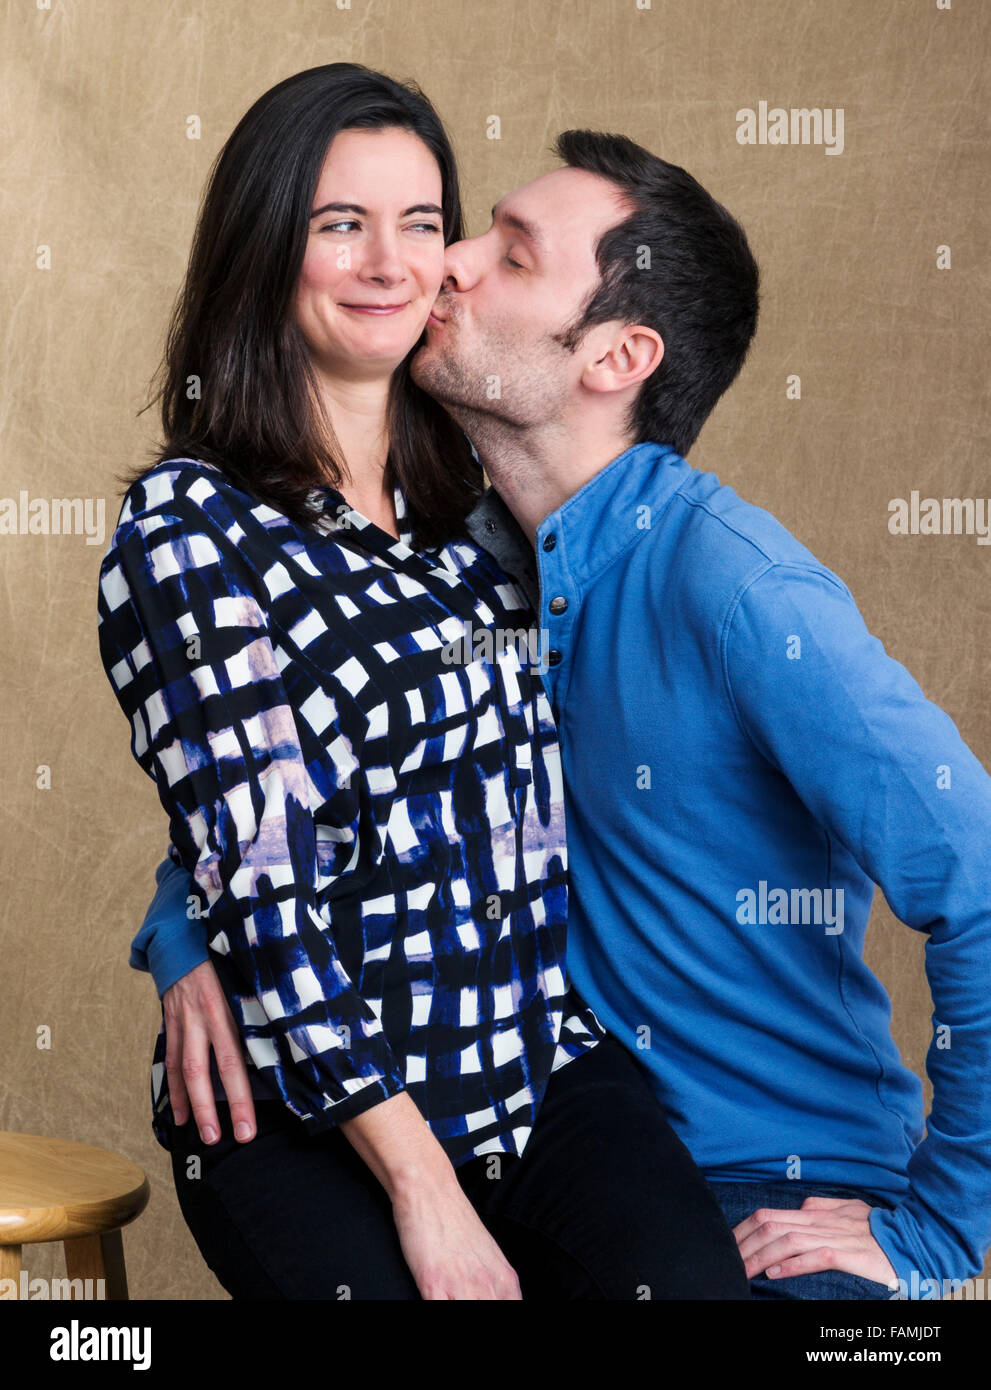 Humorous studio portrait of young couple kissing - Stock Image